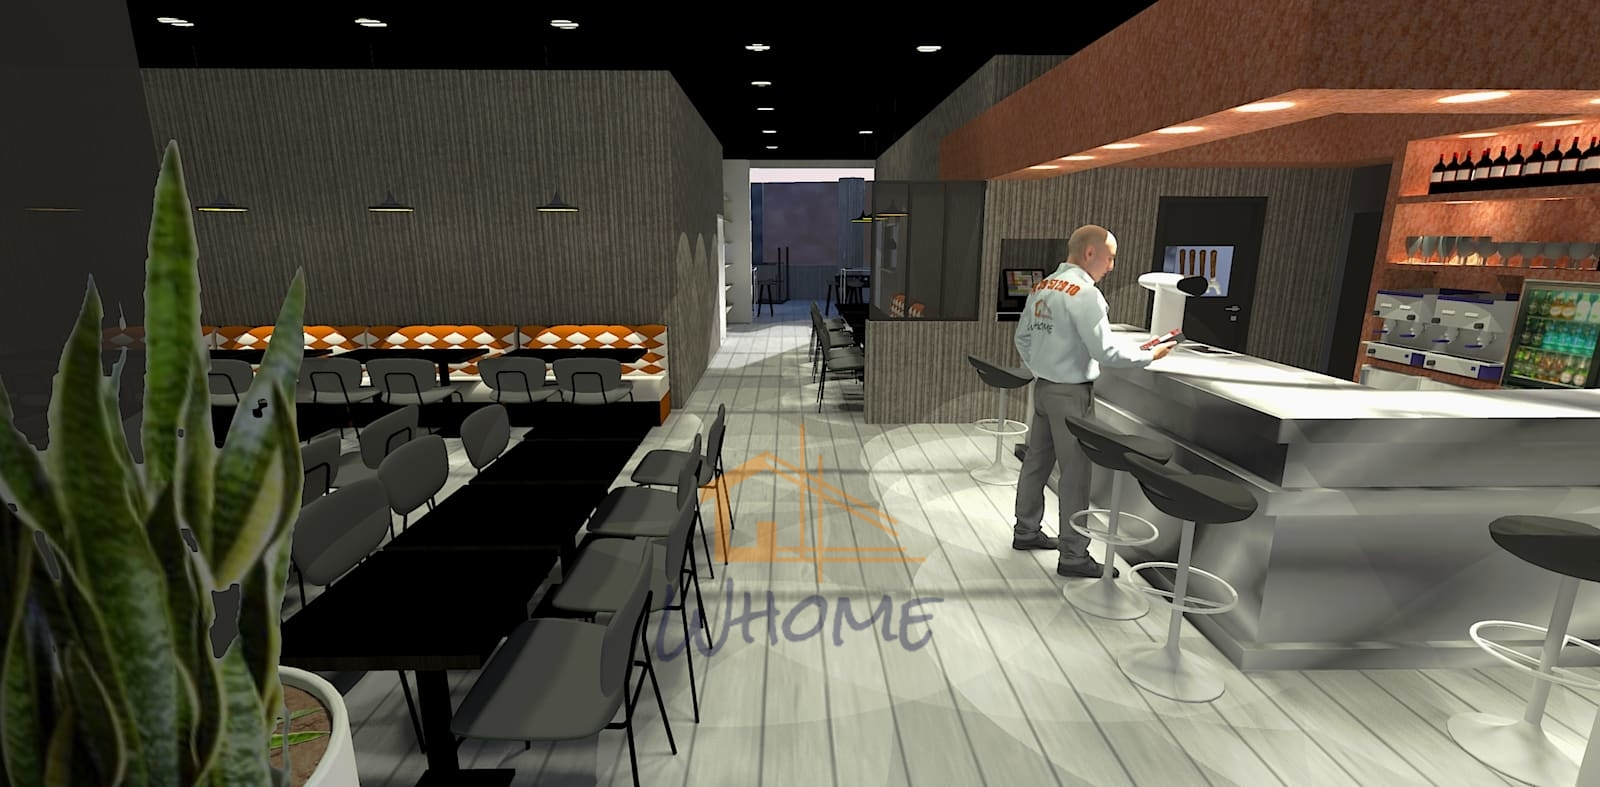 whome-restructuration-restaurant